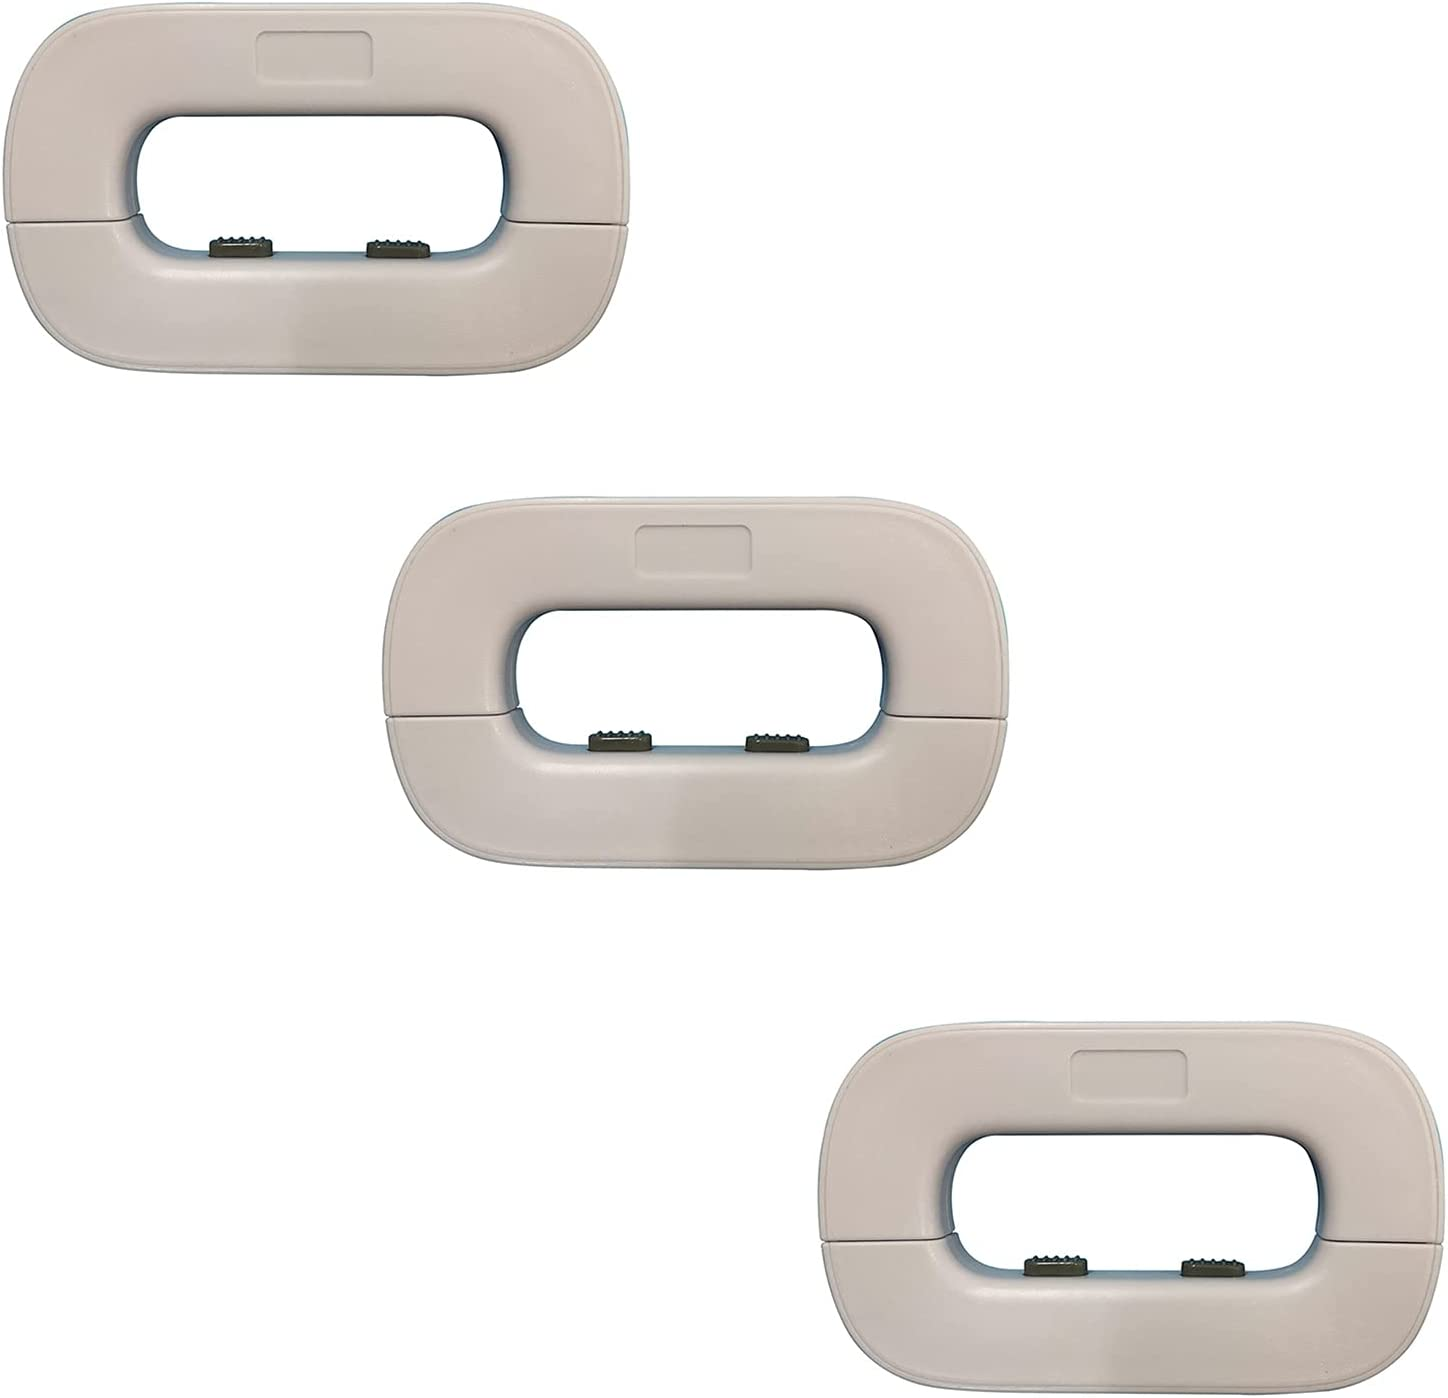 3 Bombing new work Indefinitely Pack Child Safety Self-Adhesive Cupboard Cabinet Locks